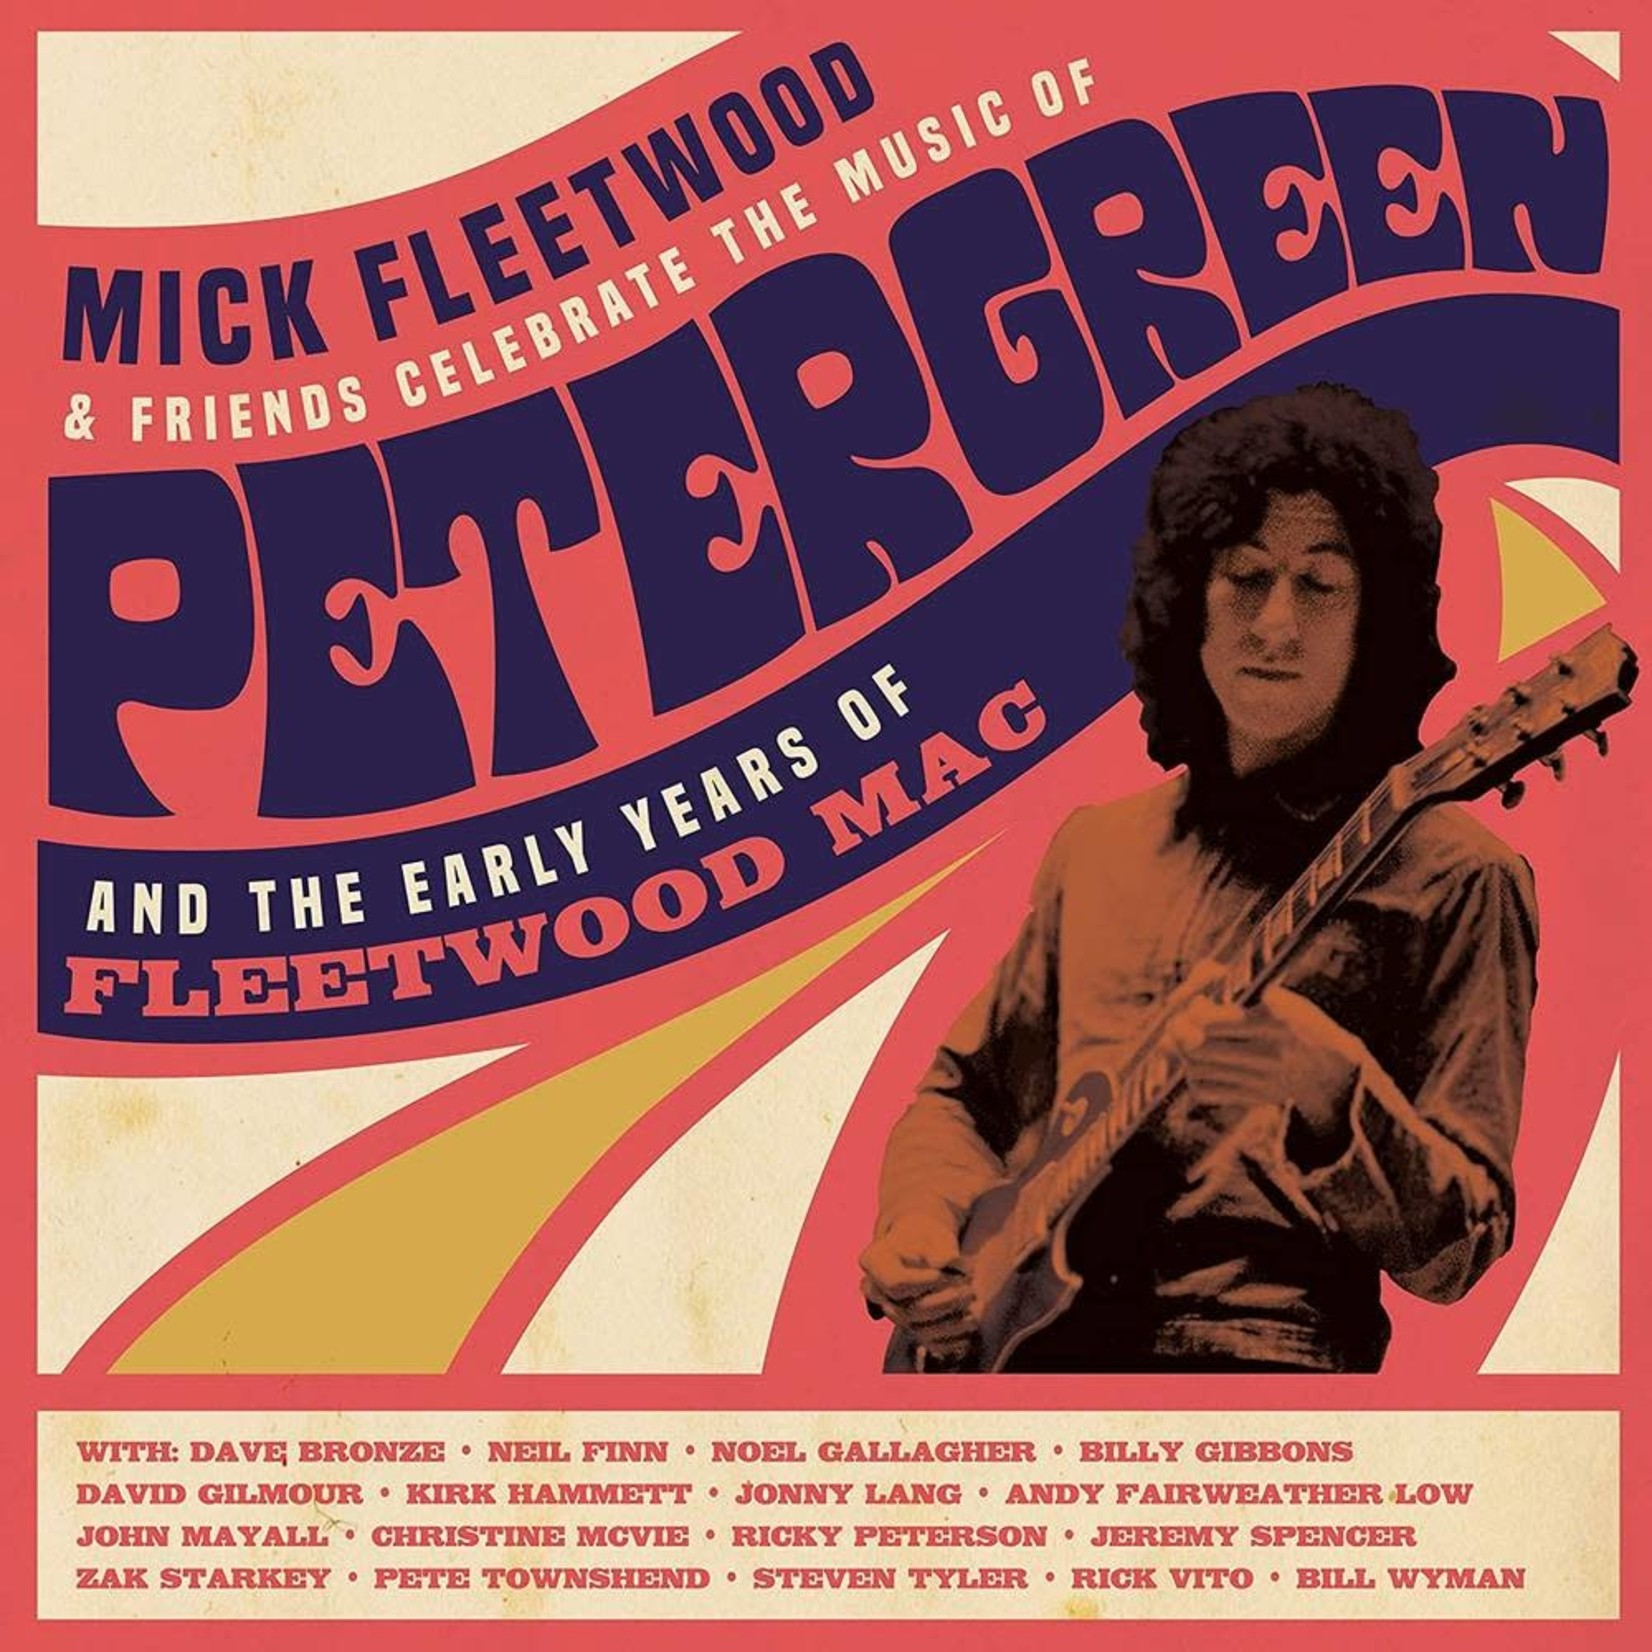 MICK FLEETWOOD CELEBRATE THE MUSIC OF PETER GREEN AND THE EARLY YEARS OF FLEETWOOD MAC (4LP)